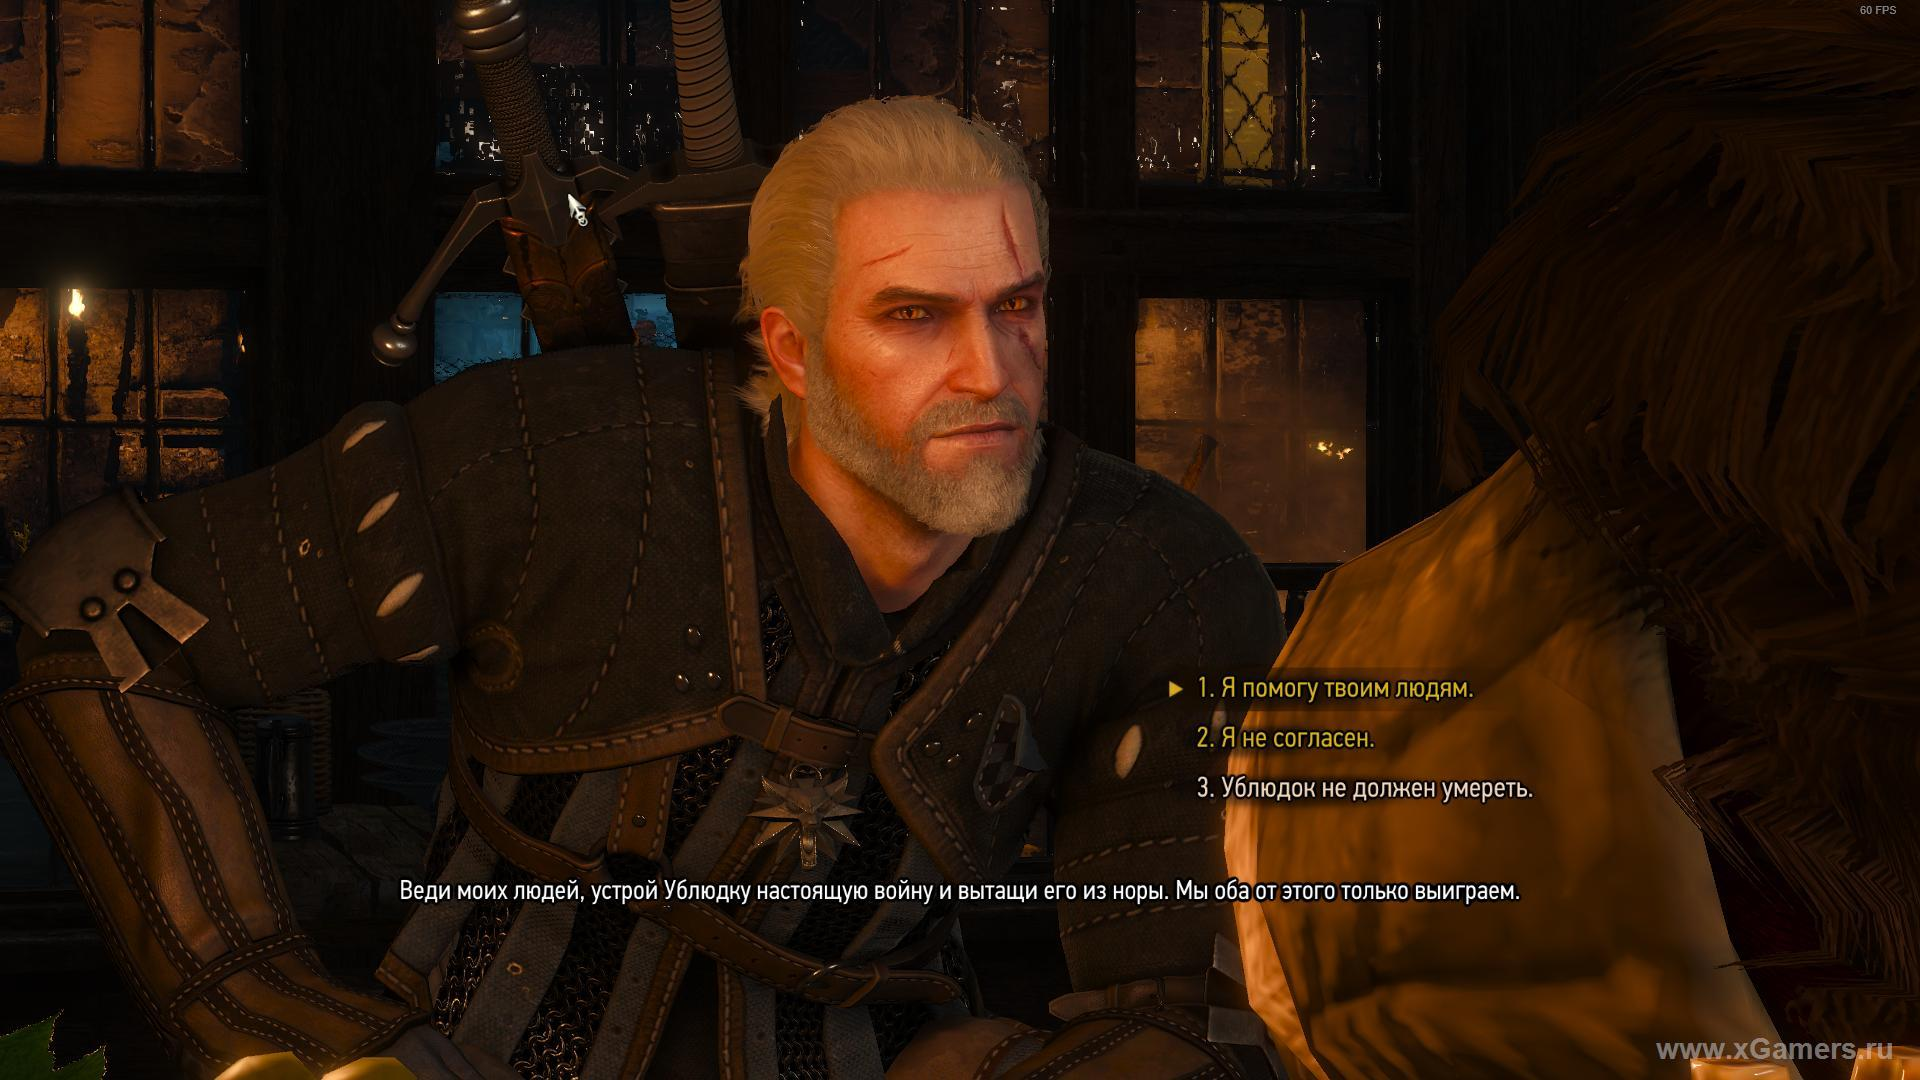 Witcher 3 gangs novigrad or hunting for younger